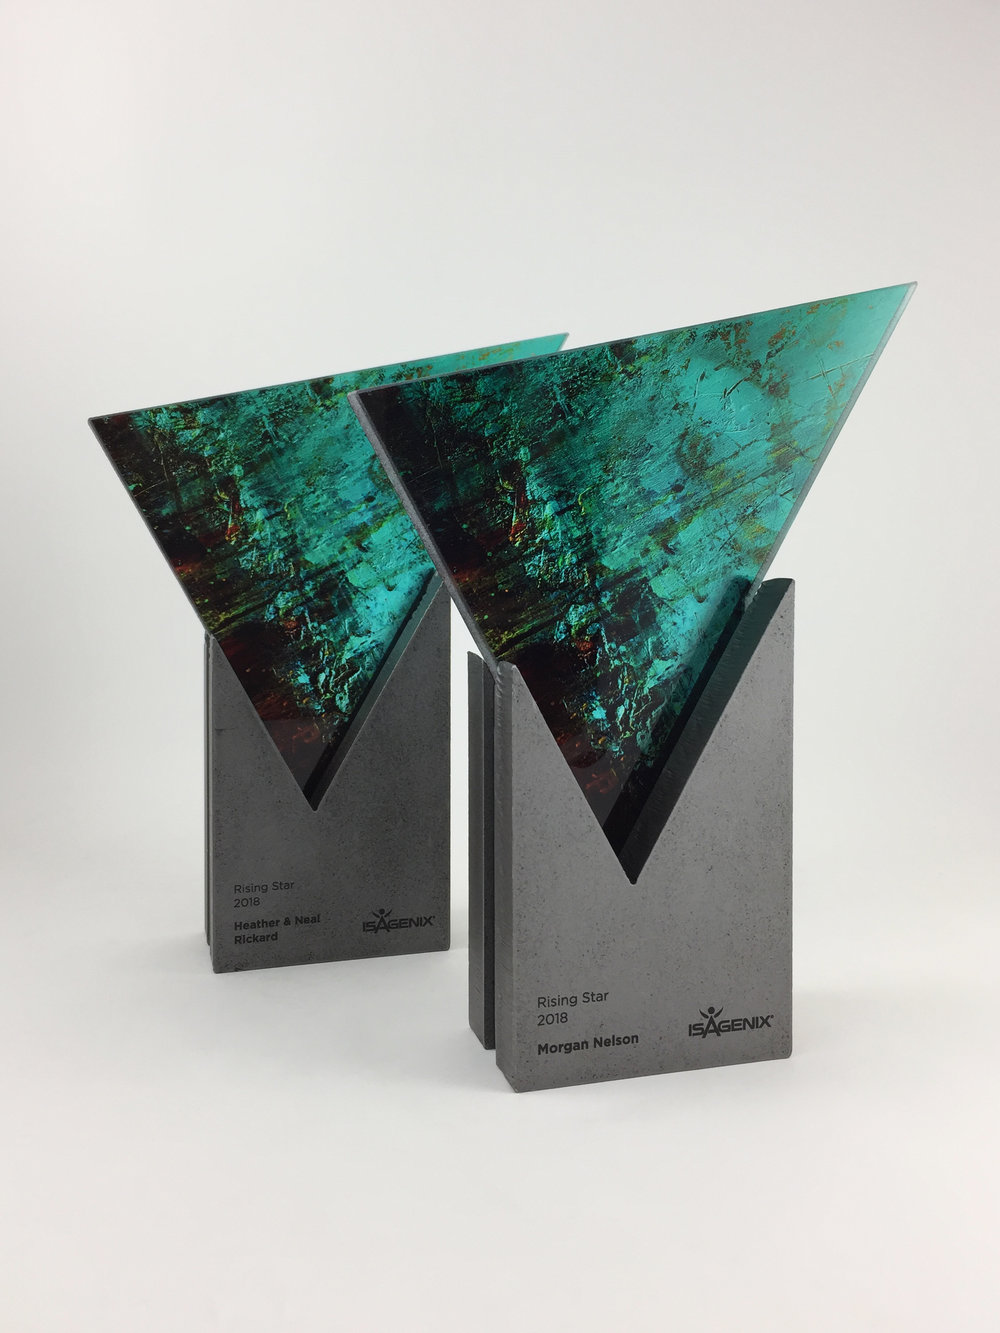 isagenix-rising-star-metal-glass-art-trophy-awards-sculpture-01.jpg